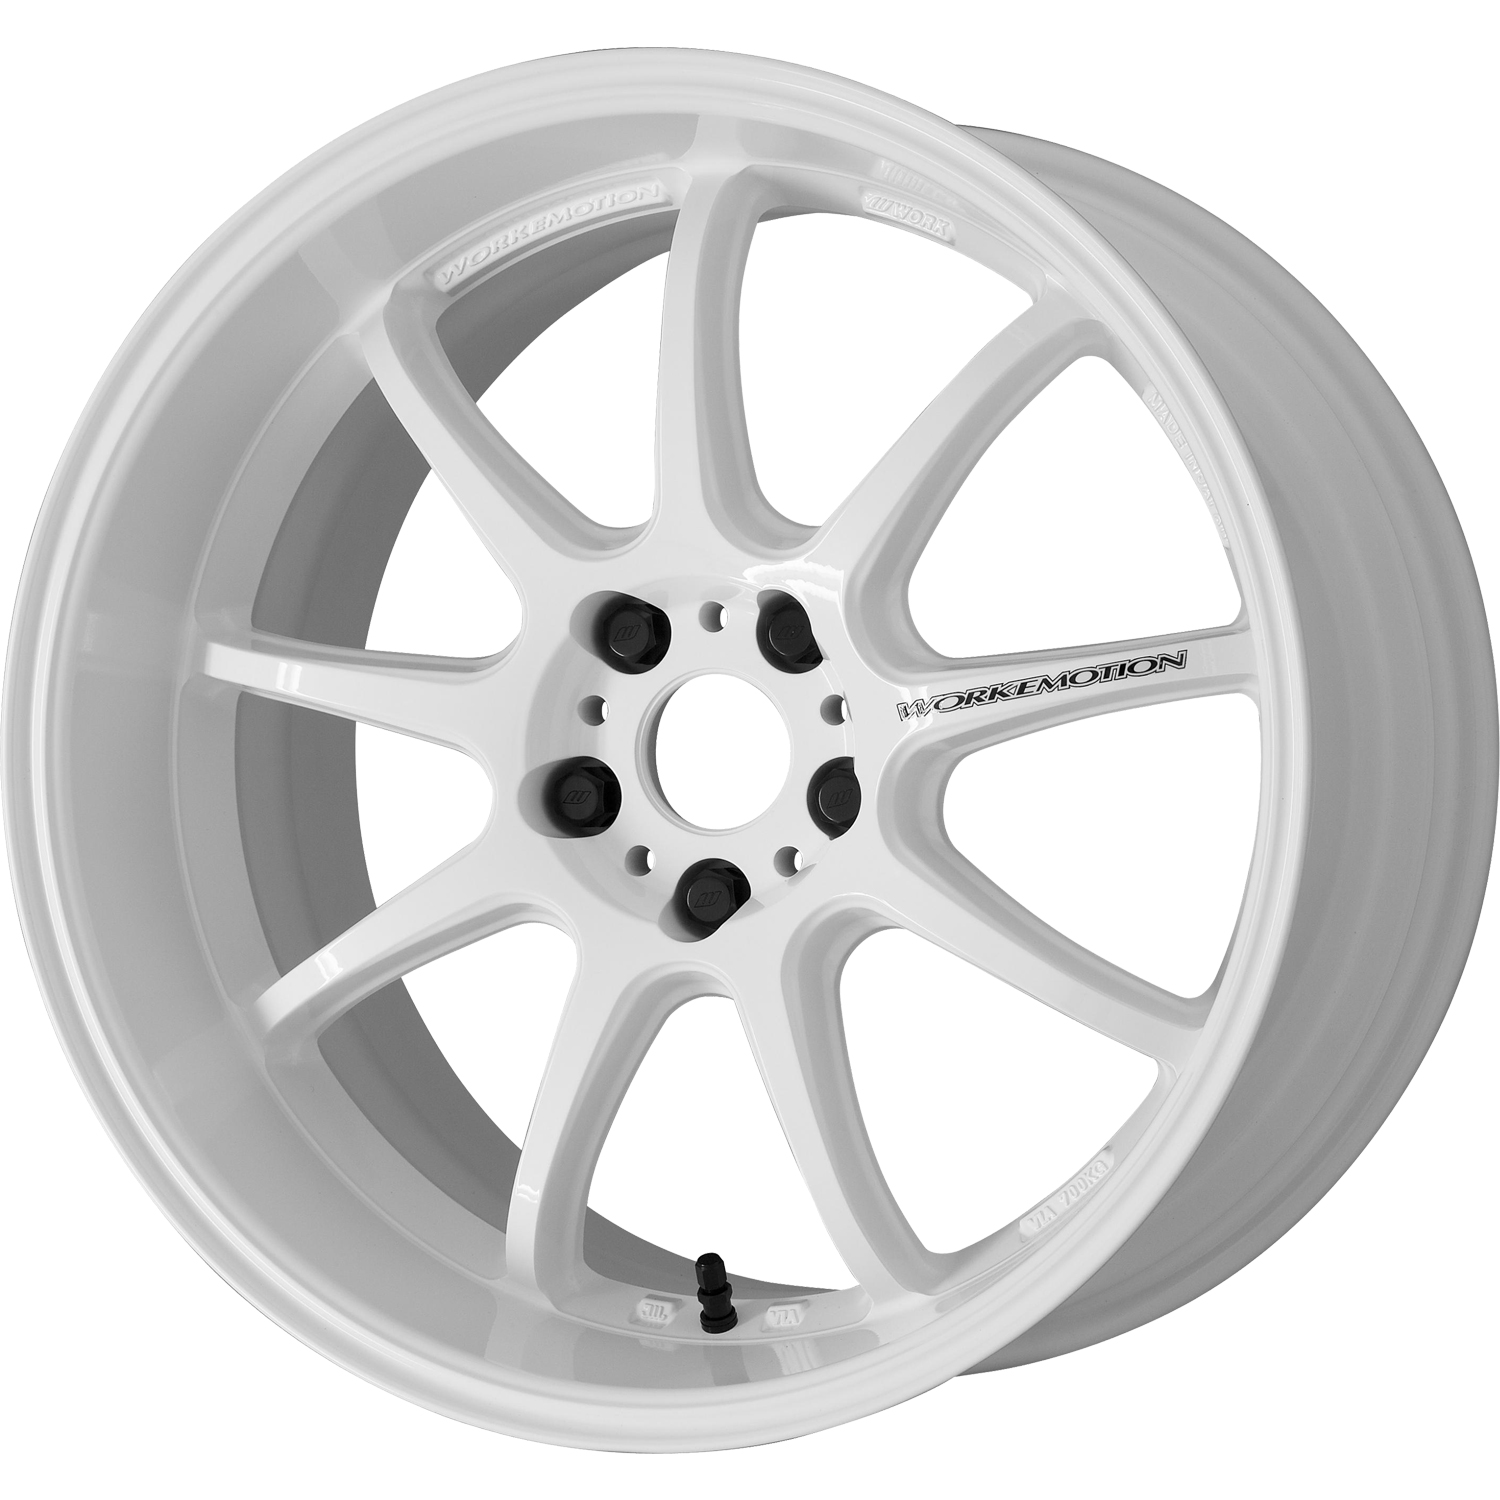 Work Emotion D9r 19x10 5 White Wheels For Sale D9r191 Fitment Industries